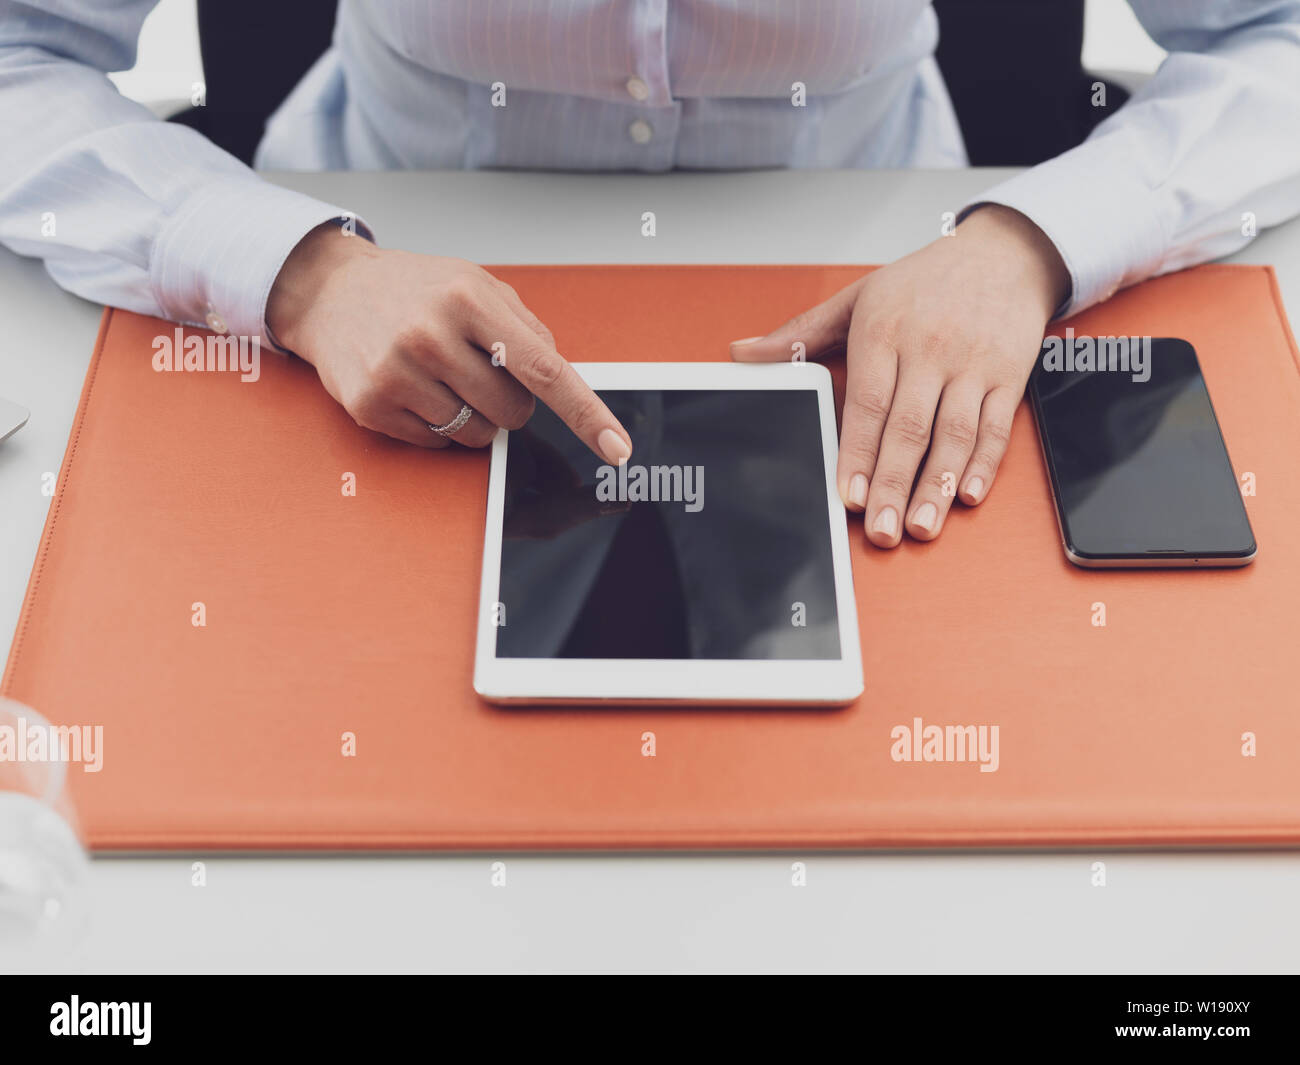 Female office worker sitting at desk and working with a digital touch screen tablet - Stock Image